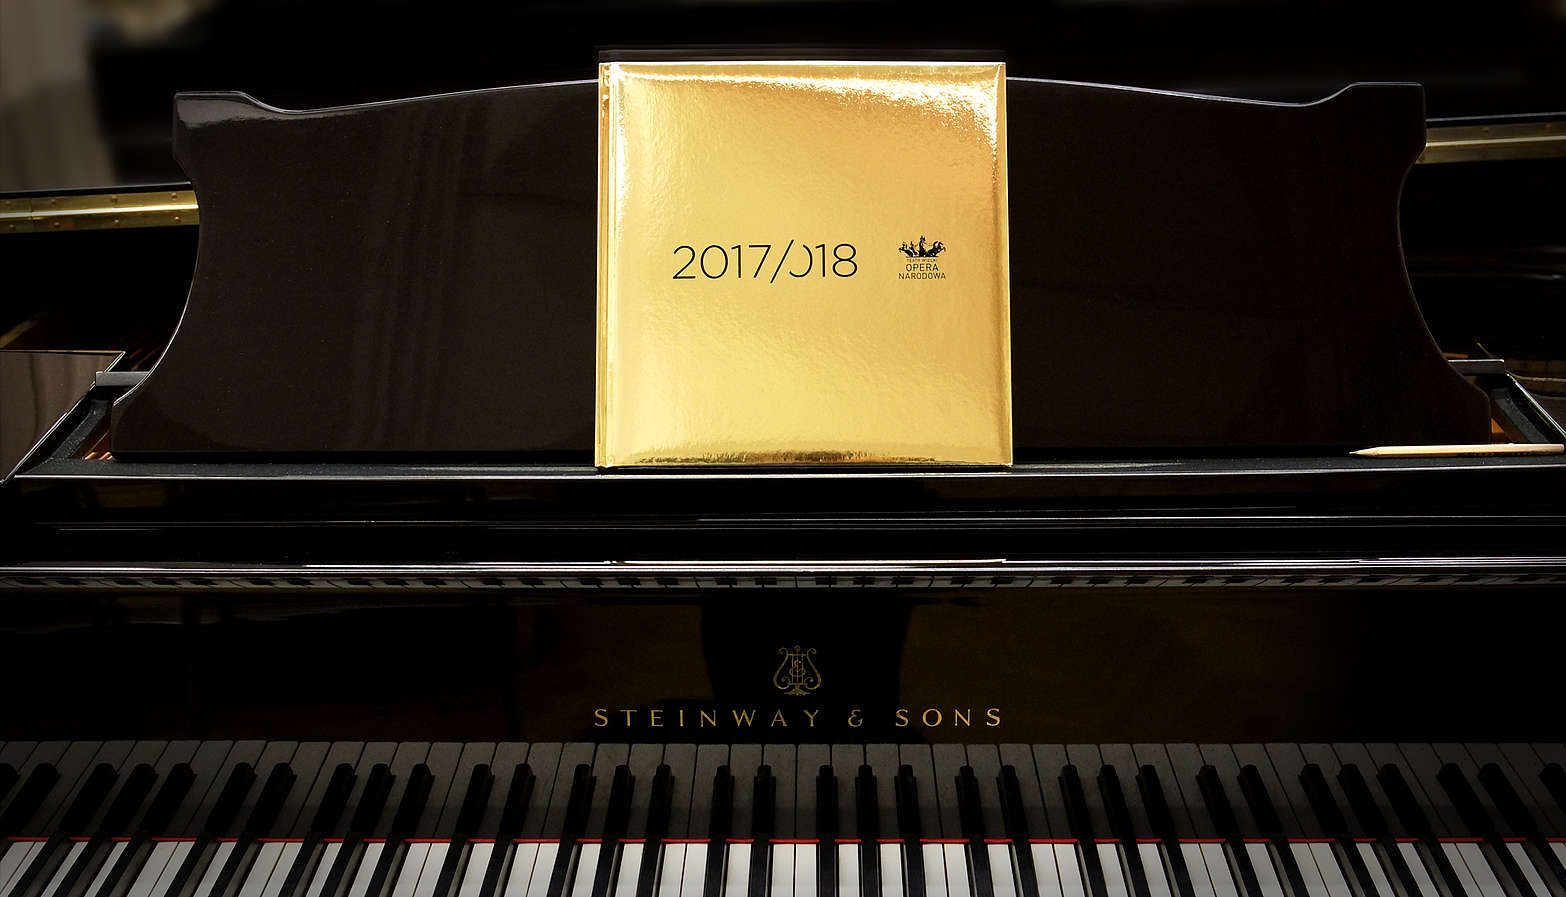 Pictured: Gold-bound book propped on a piano